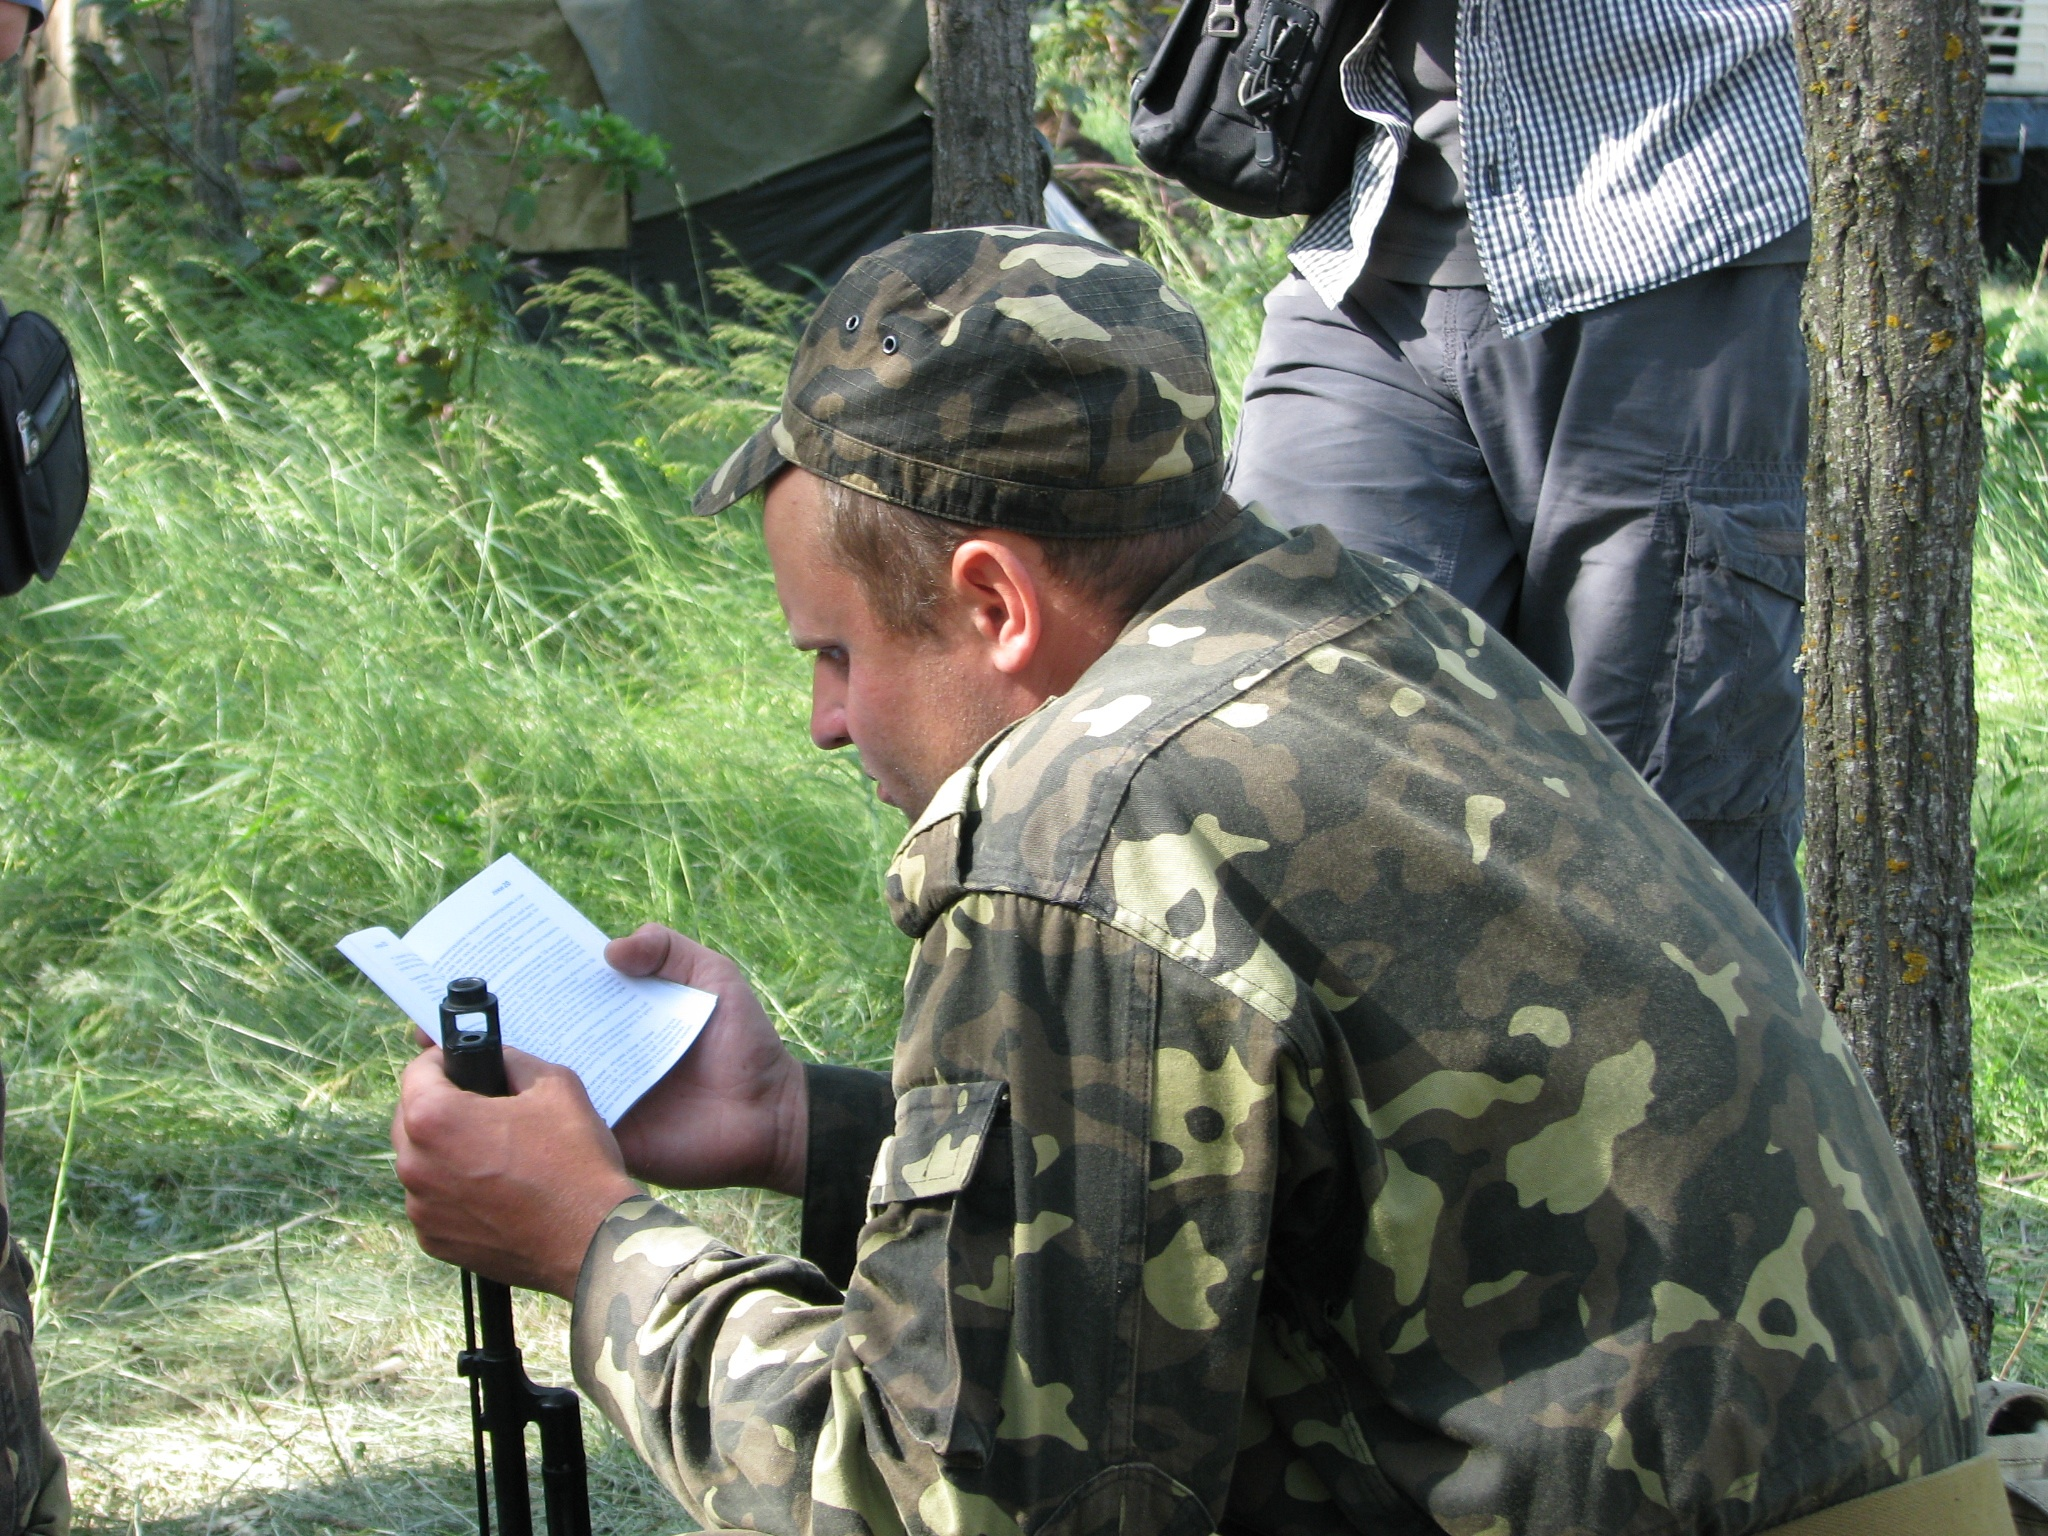 Soldier saved in Ukraine, now reaching out